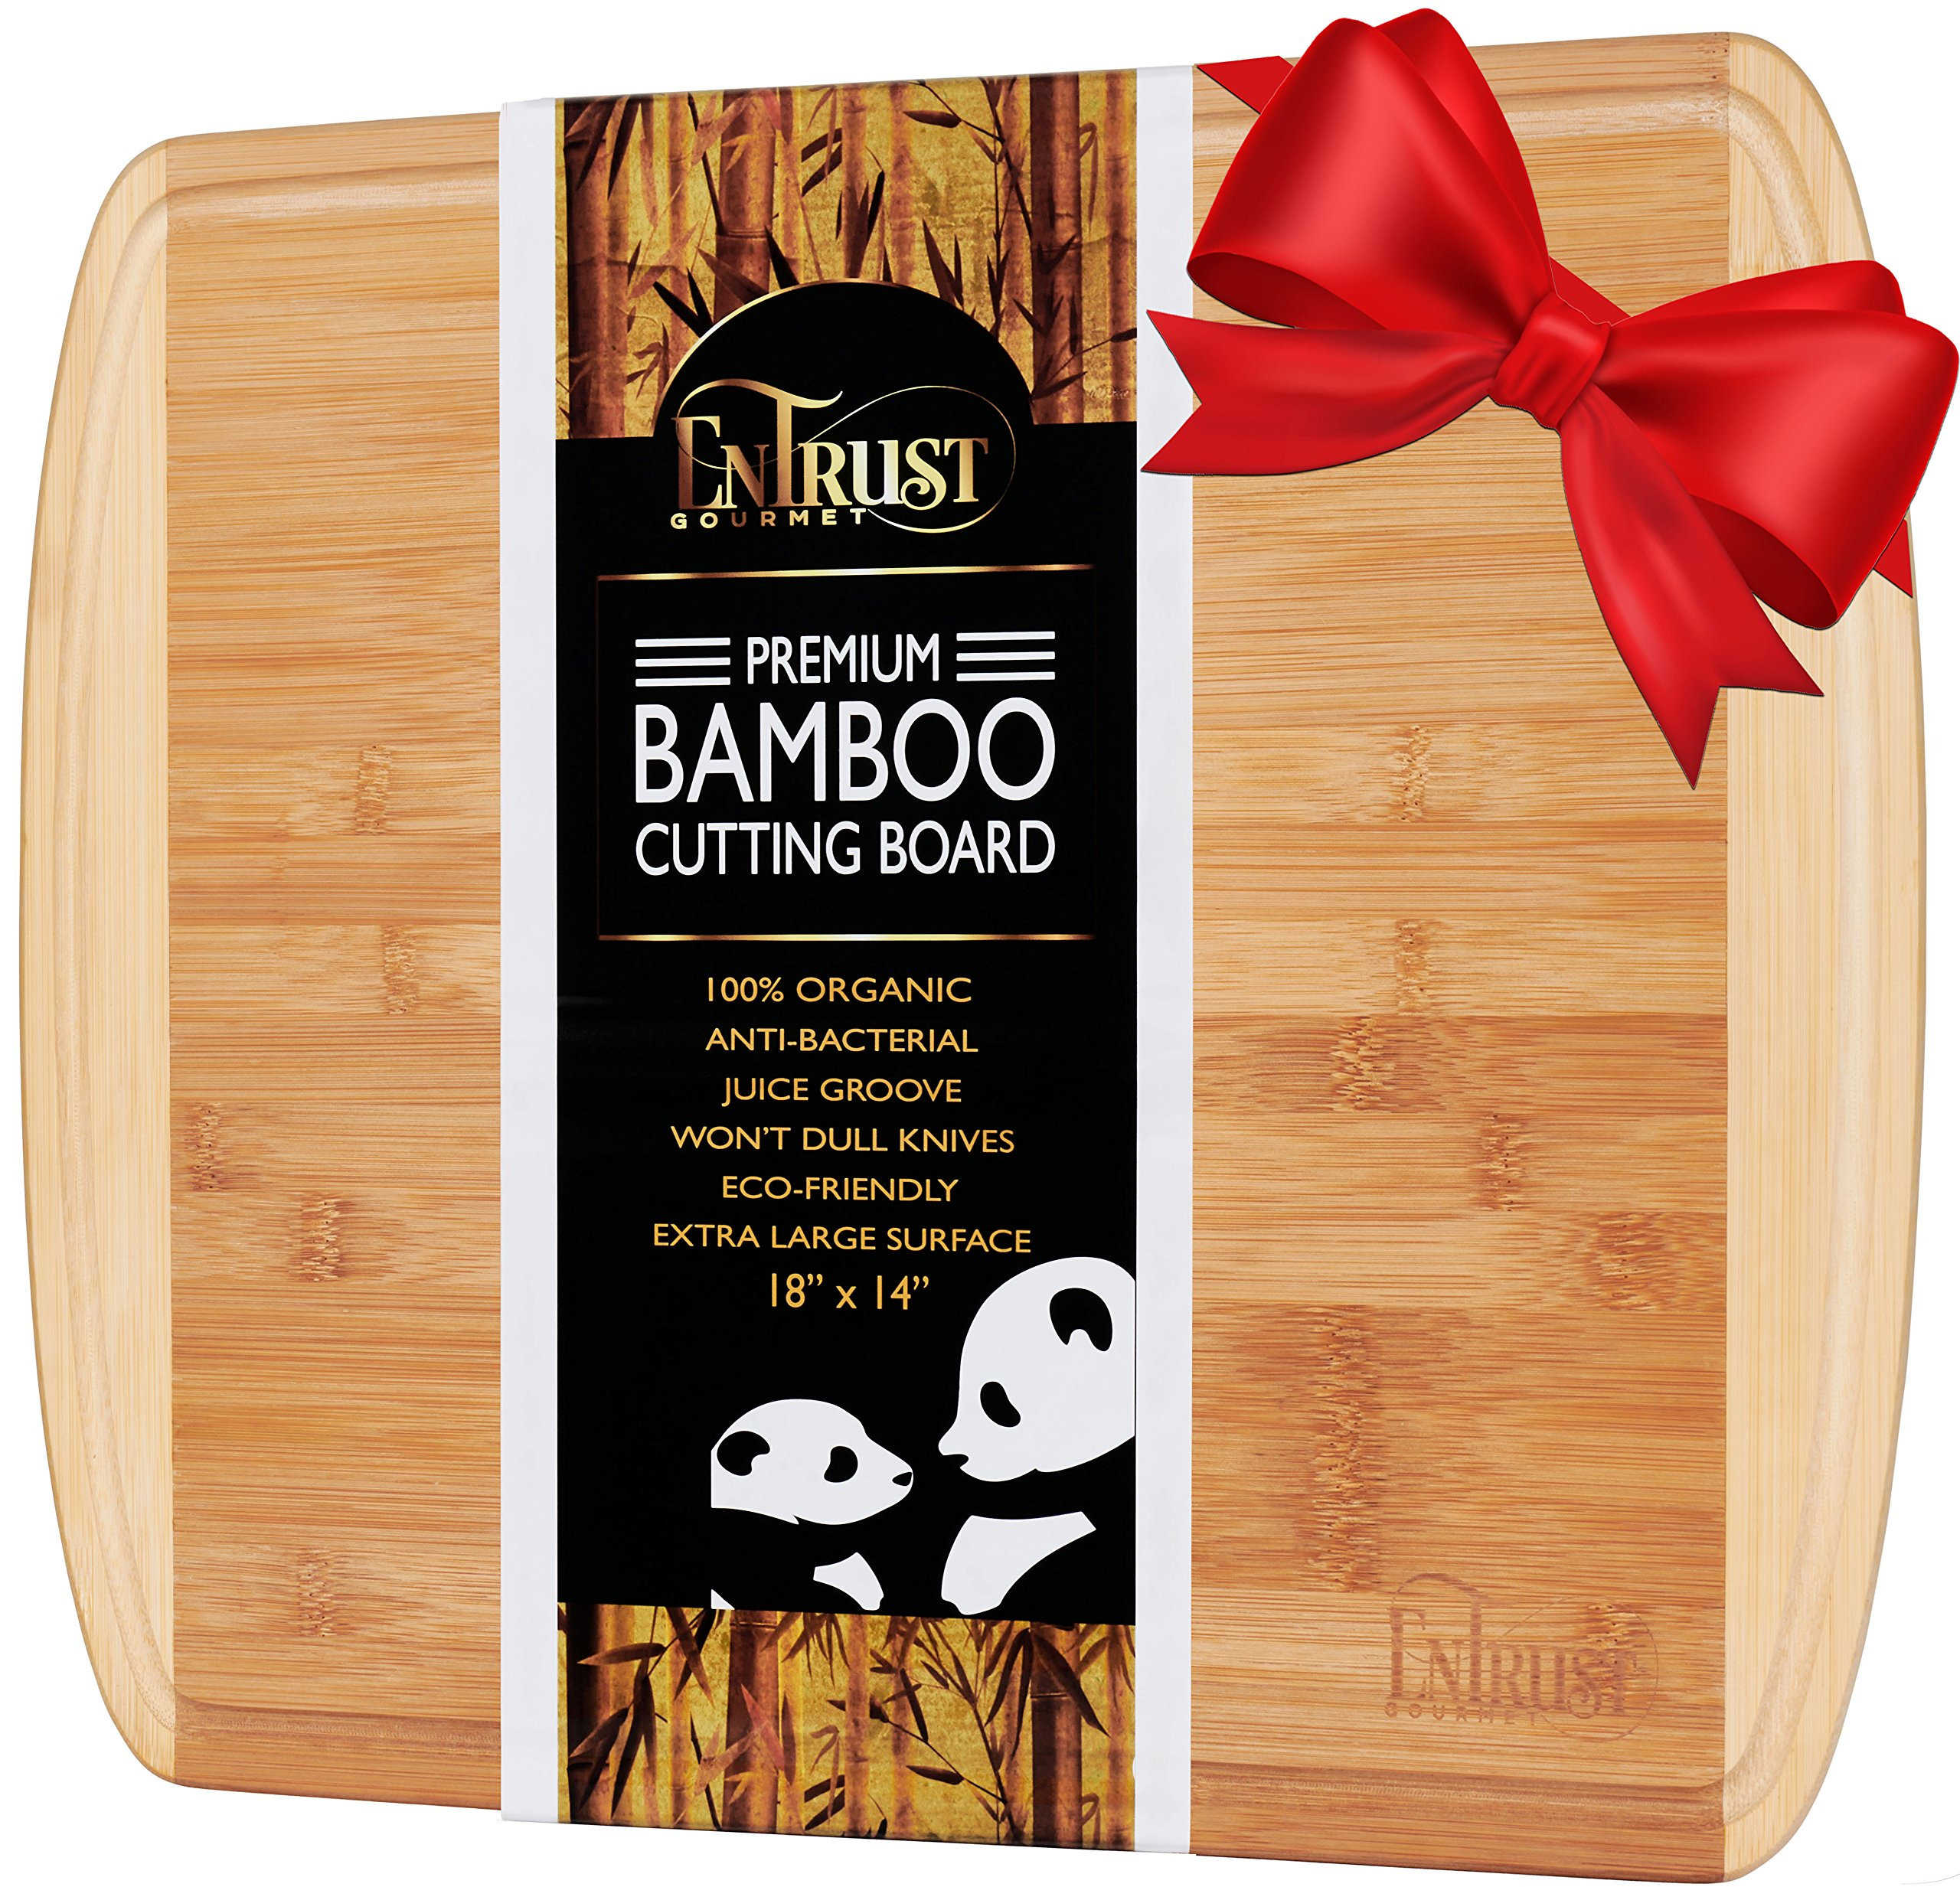 ORGANIC BAMBOO CUTTING BOARD- EXTRA LARGE PREMIUM KING SIZED 18''x 14'', with 2 oz DRIP GROOVE, WARRANTY INCLUDED, Eco Friendly Wood, Perfect Wooden Cheese Board or Serving Platter, NON-SLIP by EnTrust Gourmet